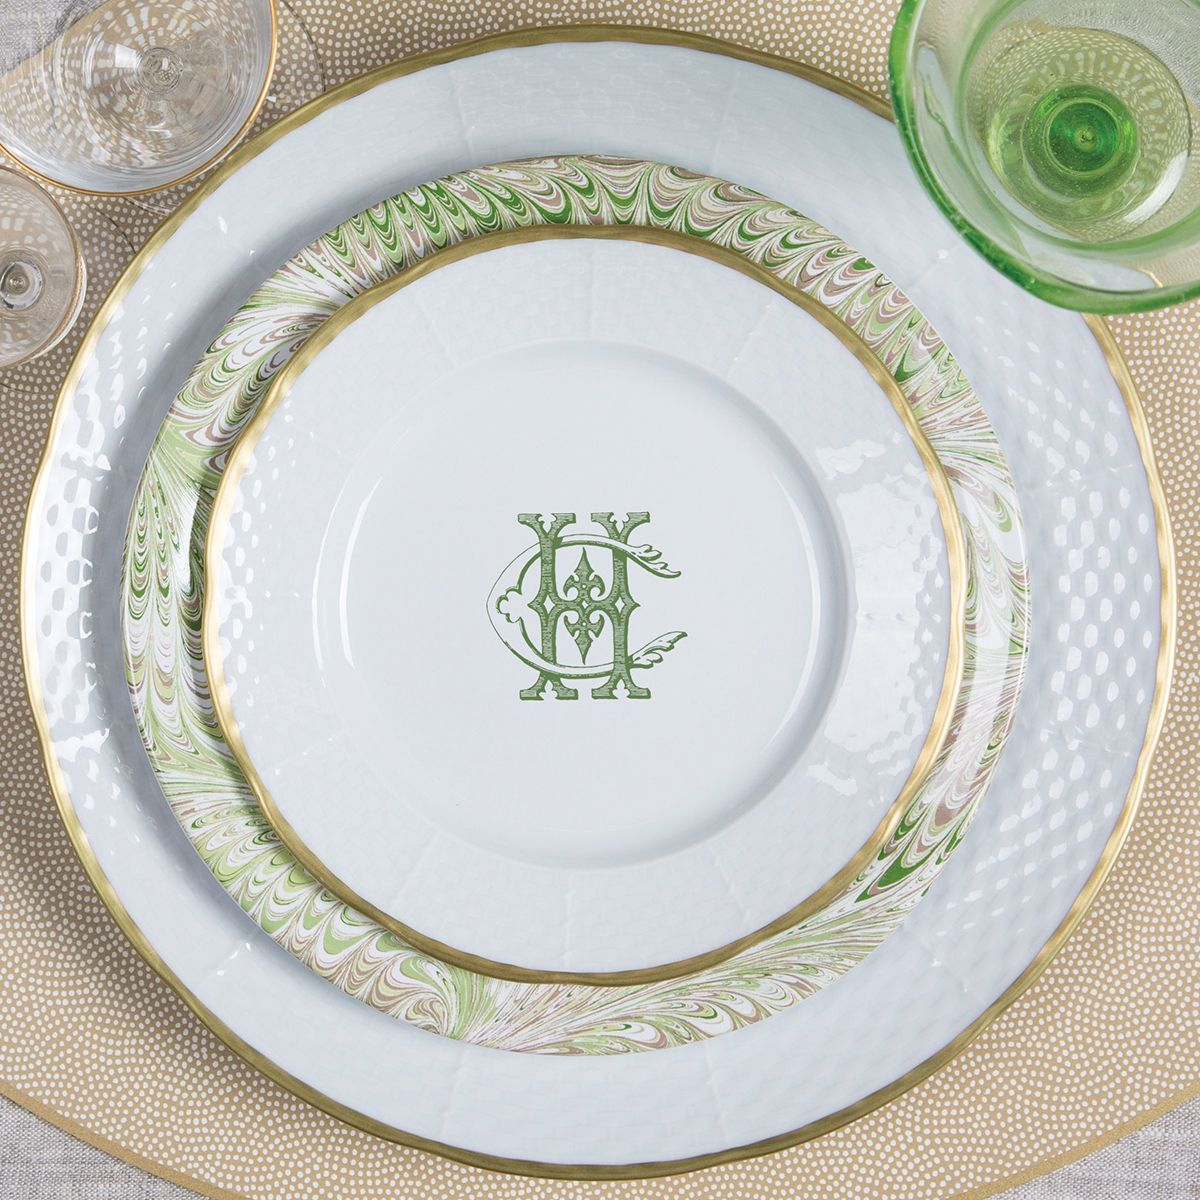 Custom design services - offering custom monogrammed dinnerware with your custom monogram. Sasha Nicholas also offers custom monogram crest and heraldry ... & Custom 2 Letter Monogram Design Services | Design services Custom ...